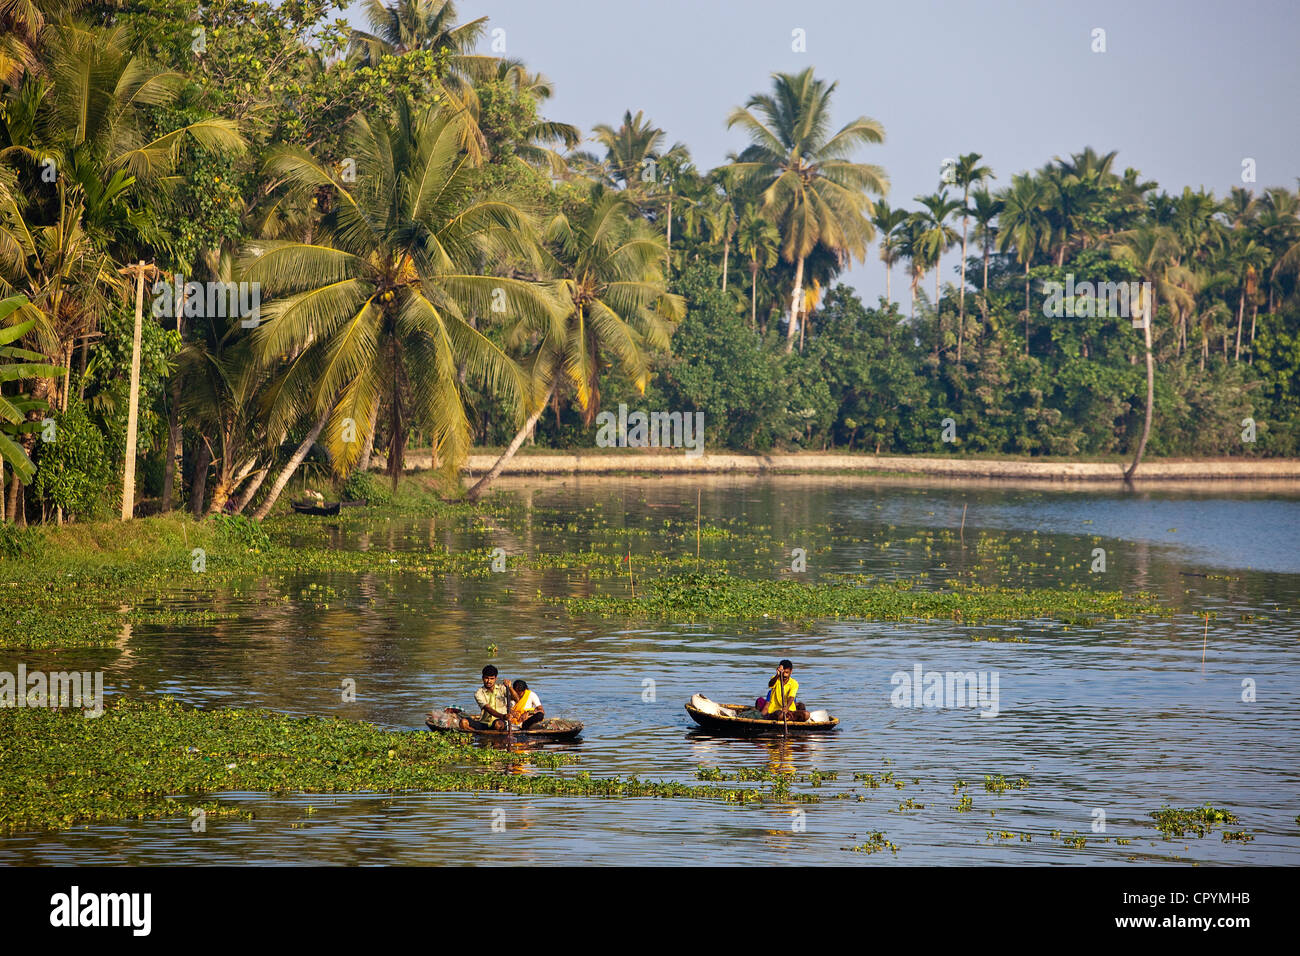 India, Kerala State, Allepey, the backwaters, daily life along the canals in the morning - Stock Image